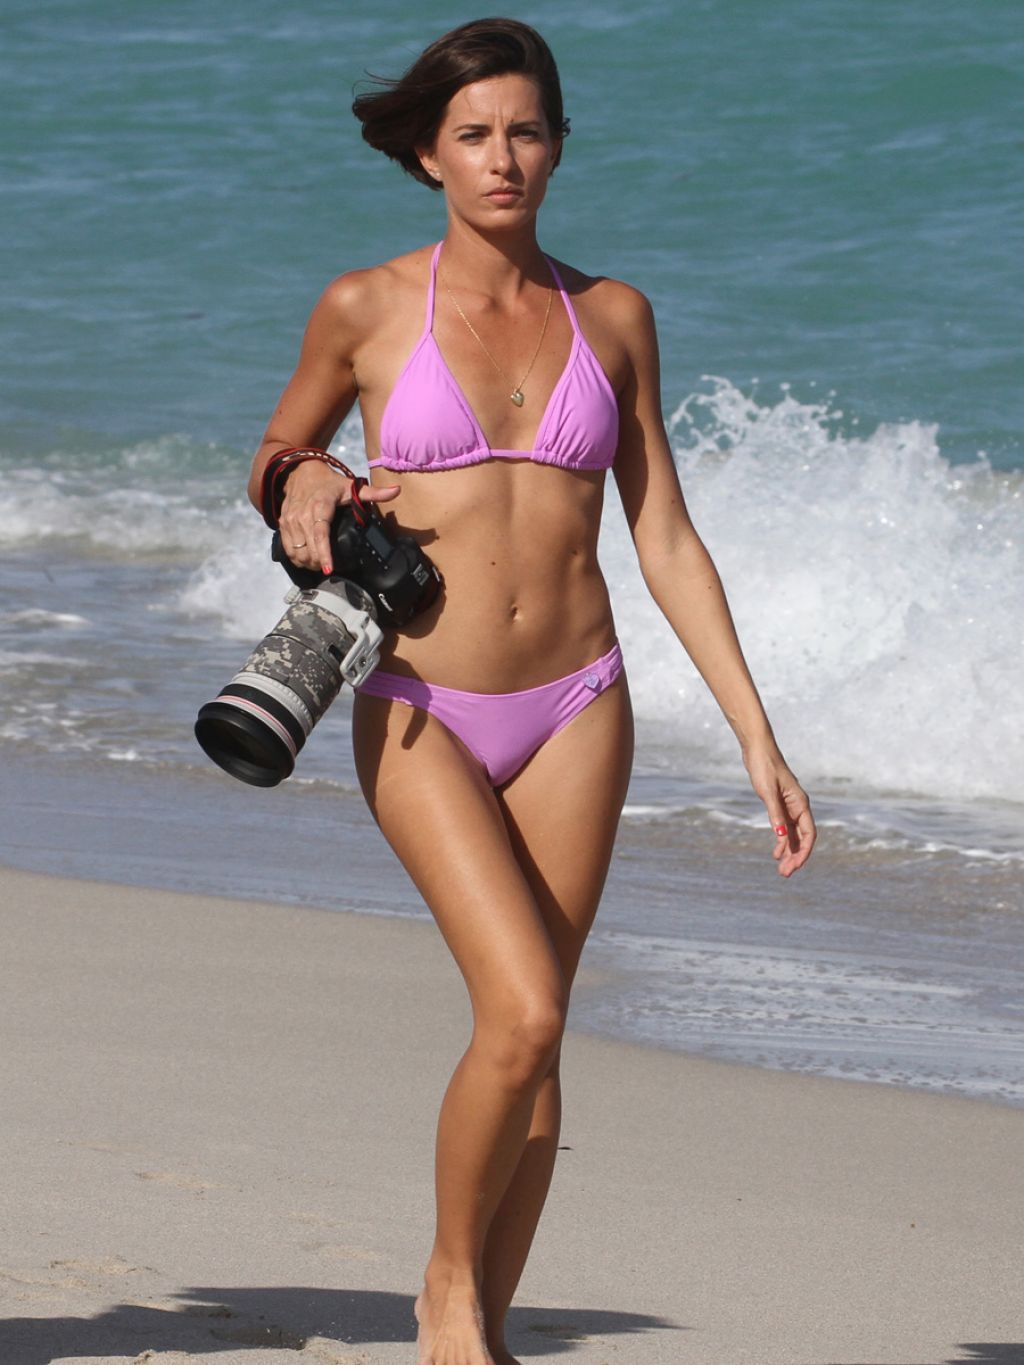 Logan Fazio in a Purple Bikini - Miami Beach, February 2014